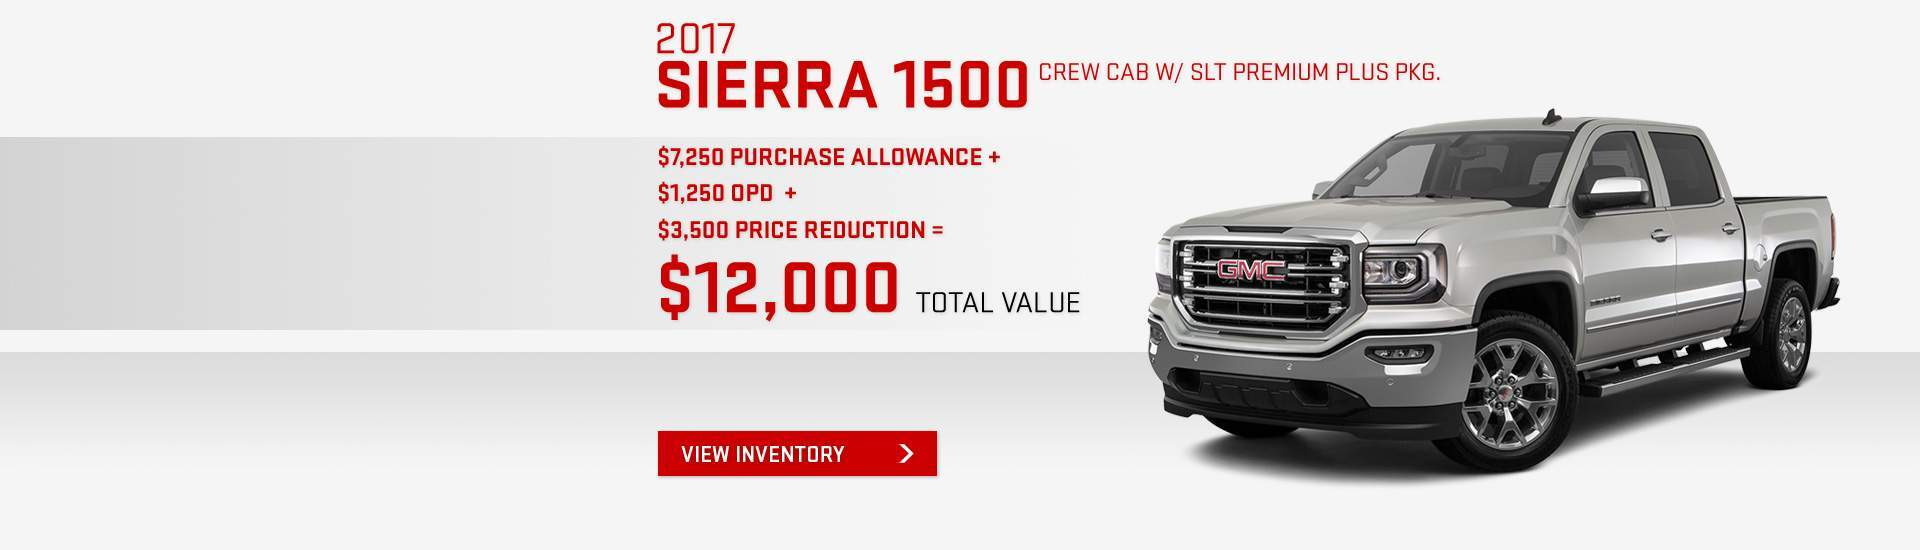 October 2017 GMC Sierra 1500 Slide